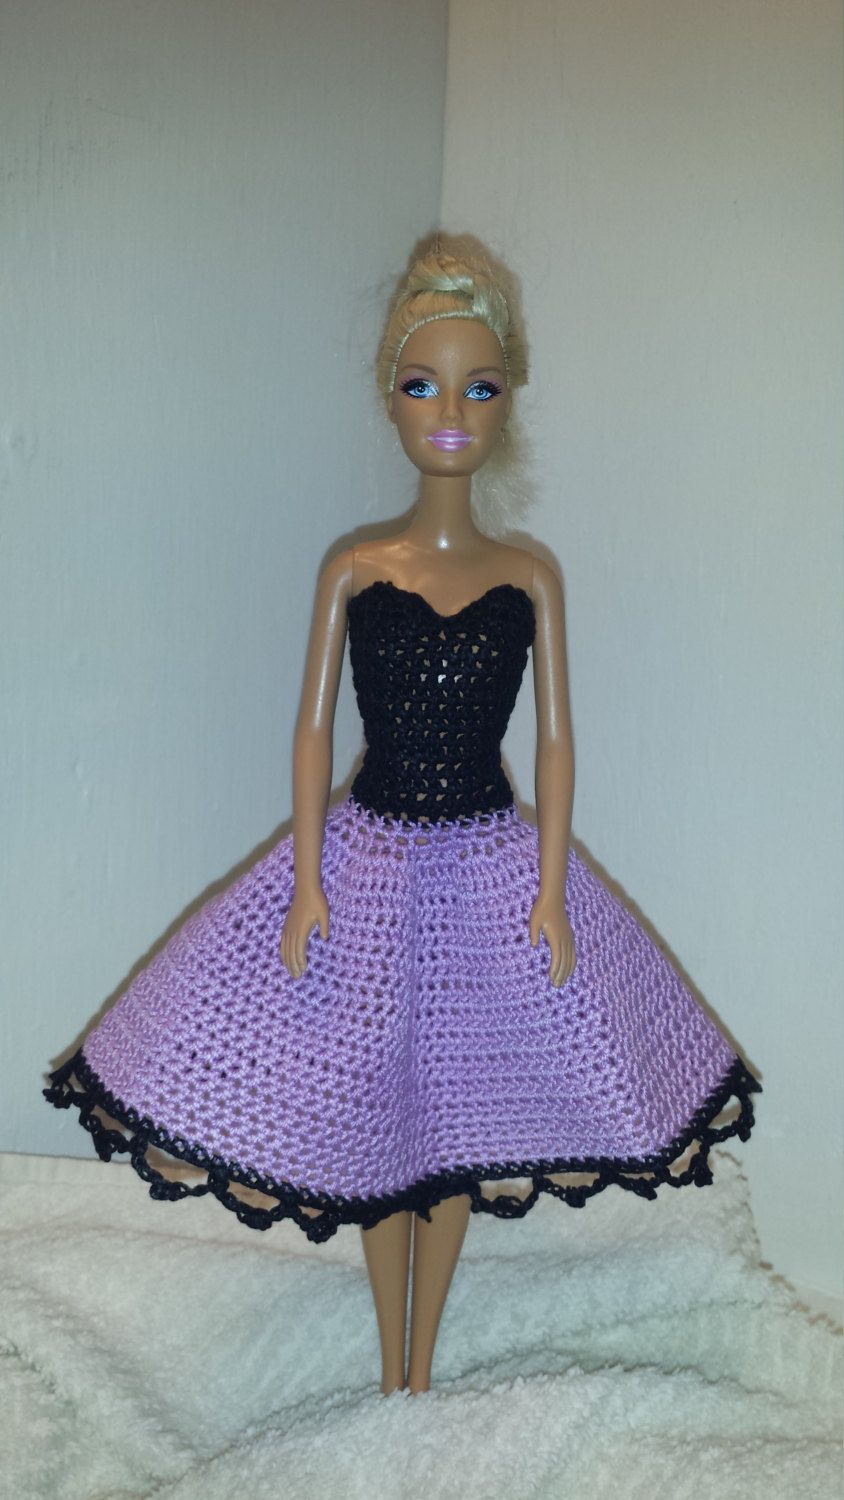 Crochet barbie strapless dress fashion doll crocheted clothing crochet barbie strapless dress fashion doll crocheted clothing handmade barbie clothes by grandmasgalleria on bankloansurffo Image collections